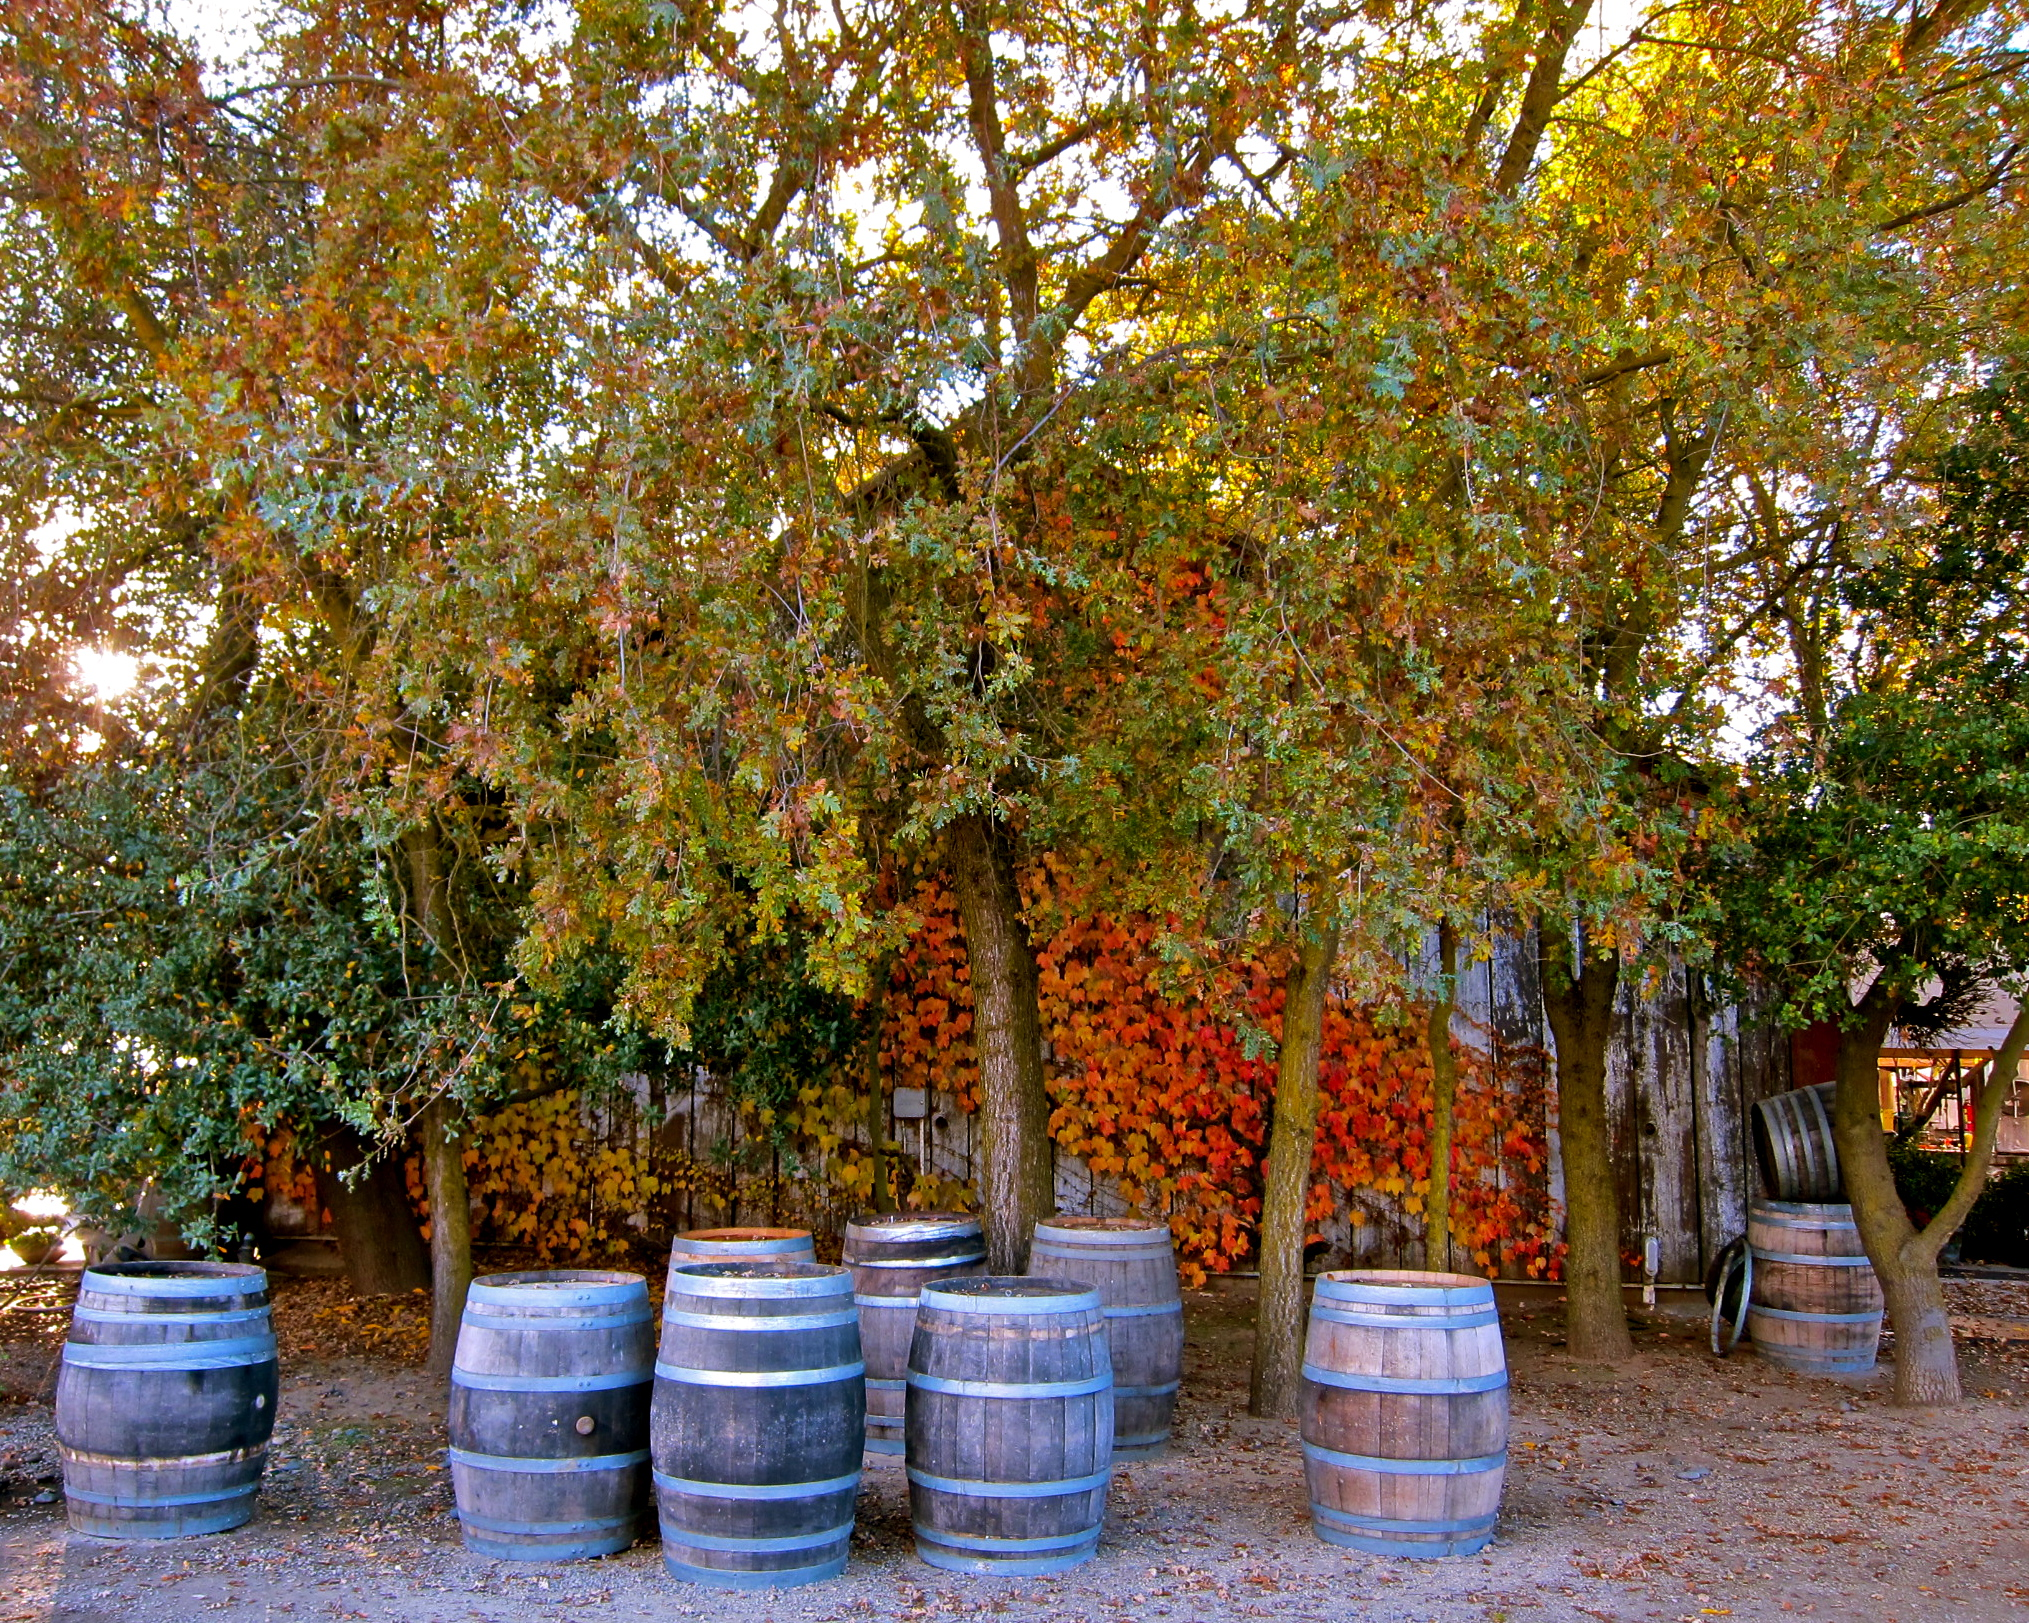 Lodi's November autumn splendor